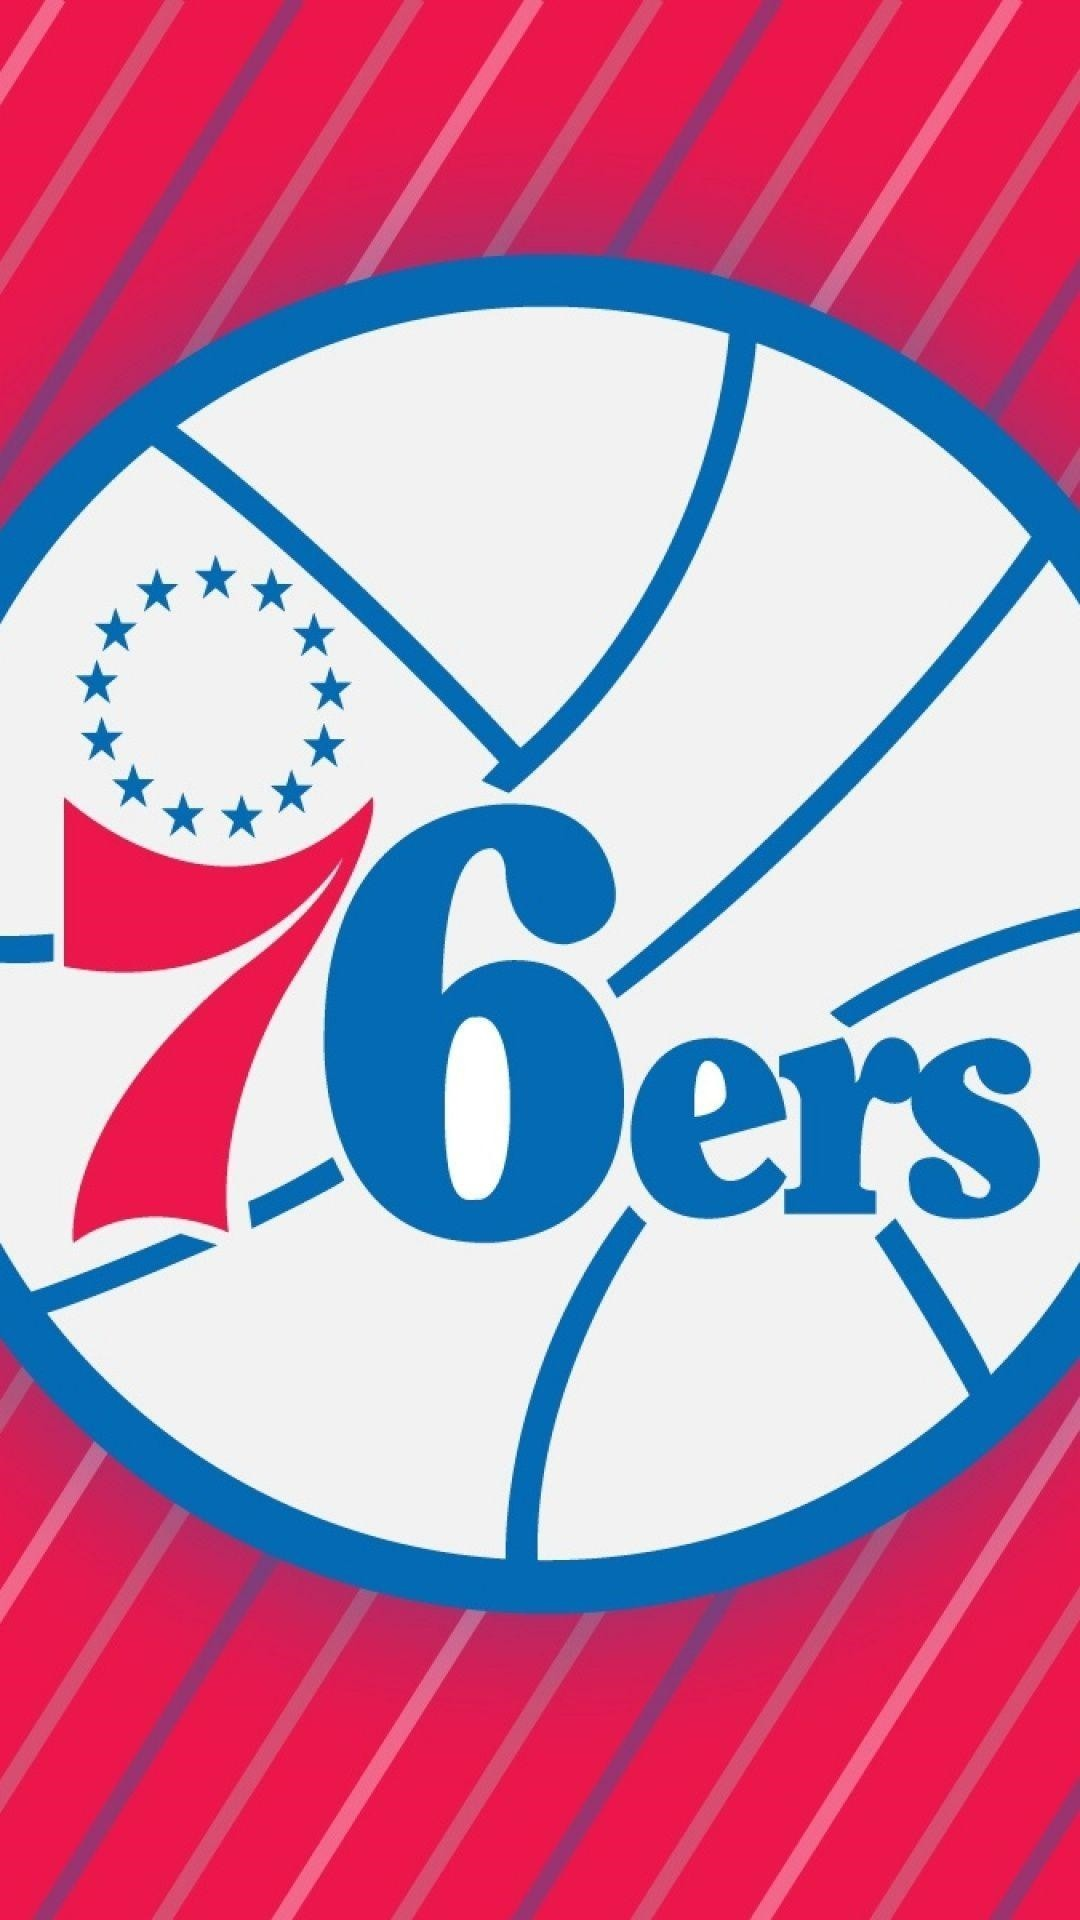 Sixers hd wallpaper for mobile